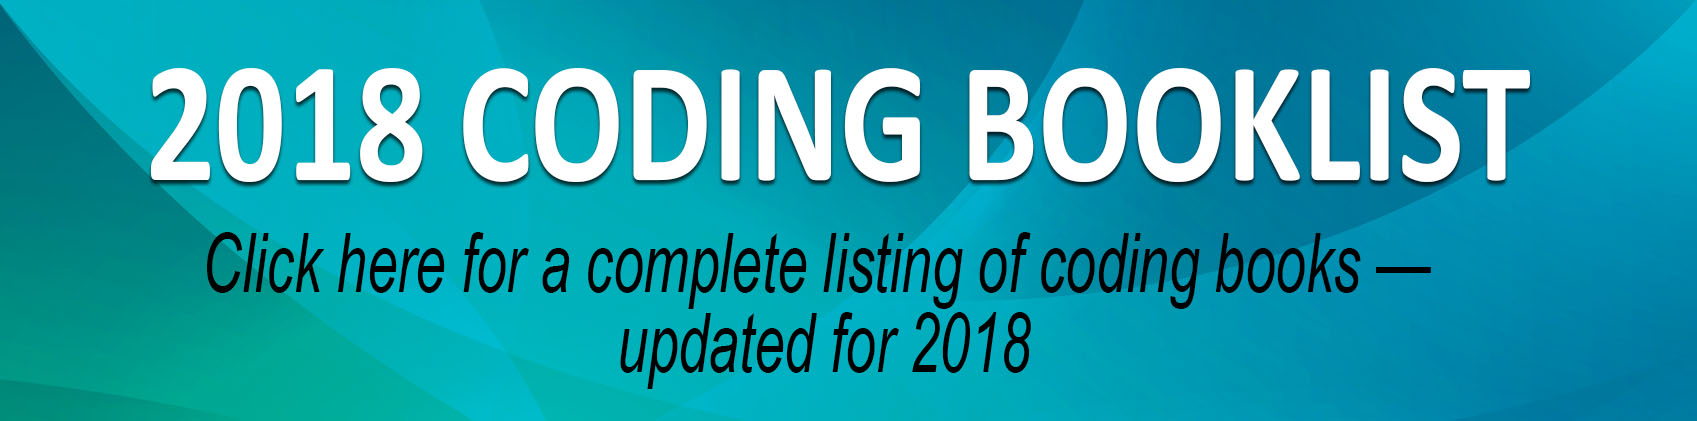 Coding Book List 2018